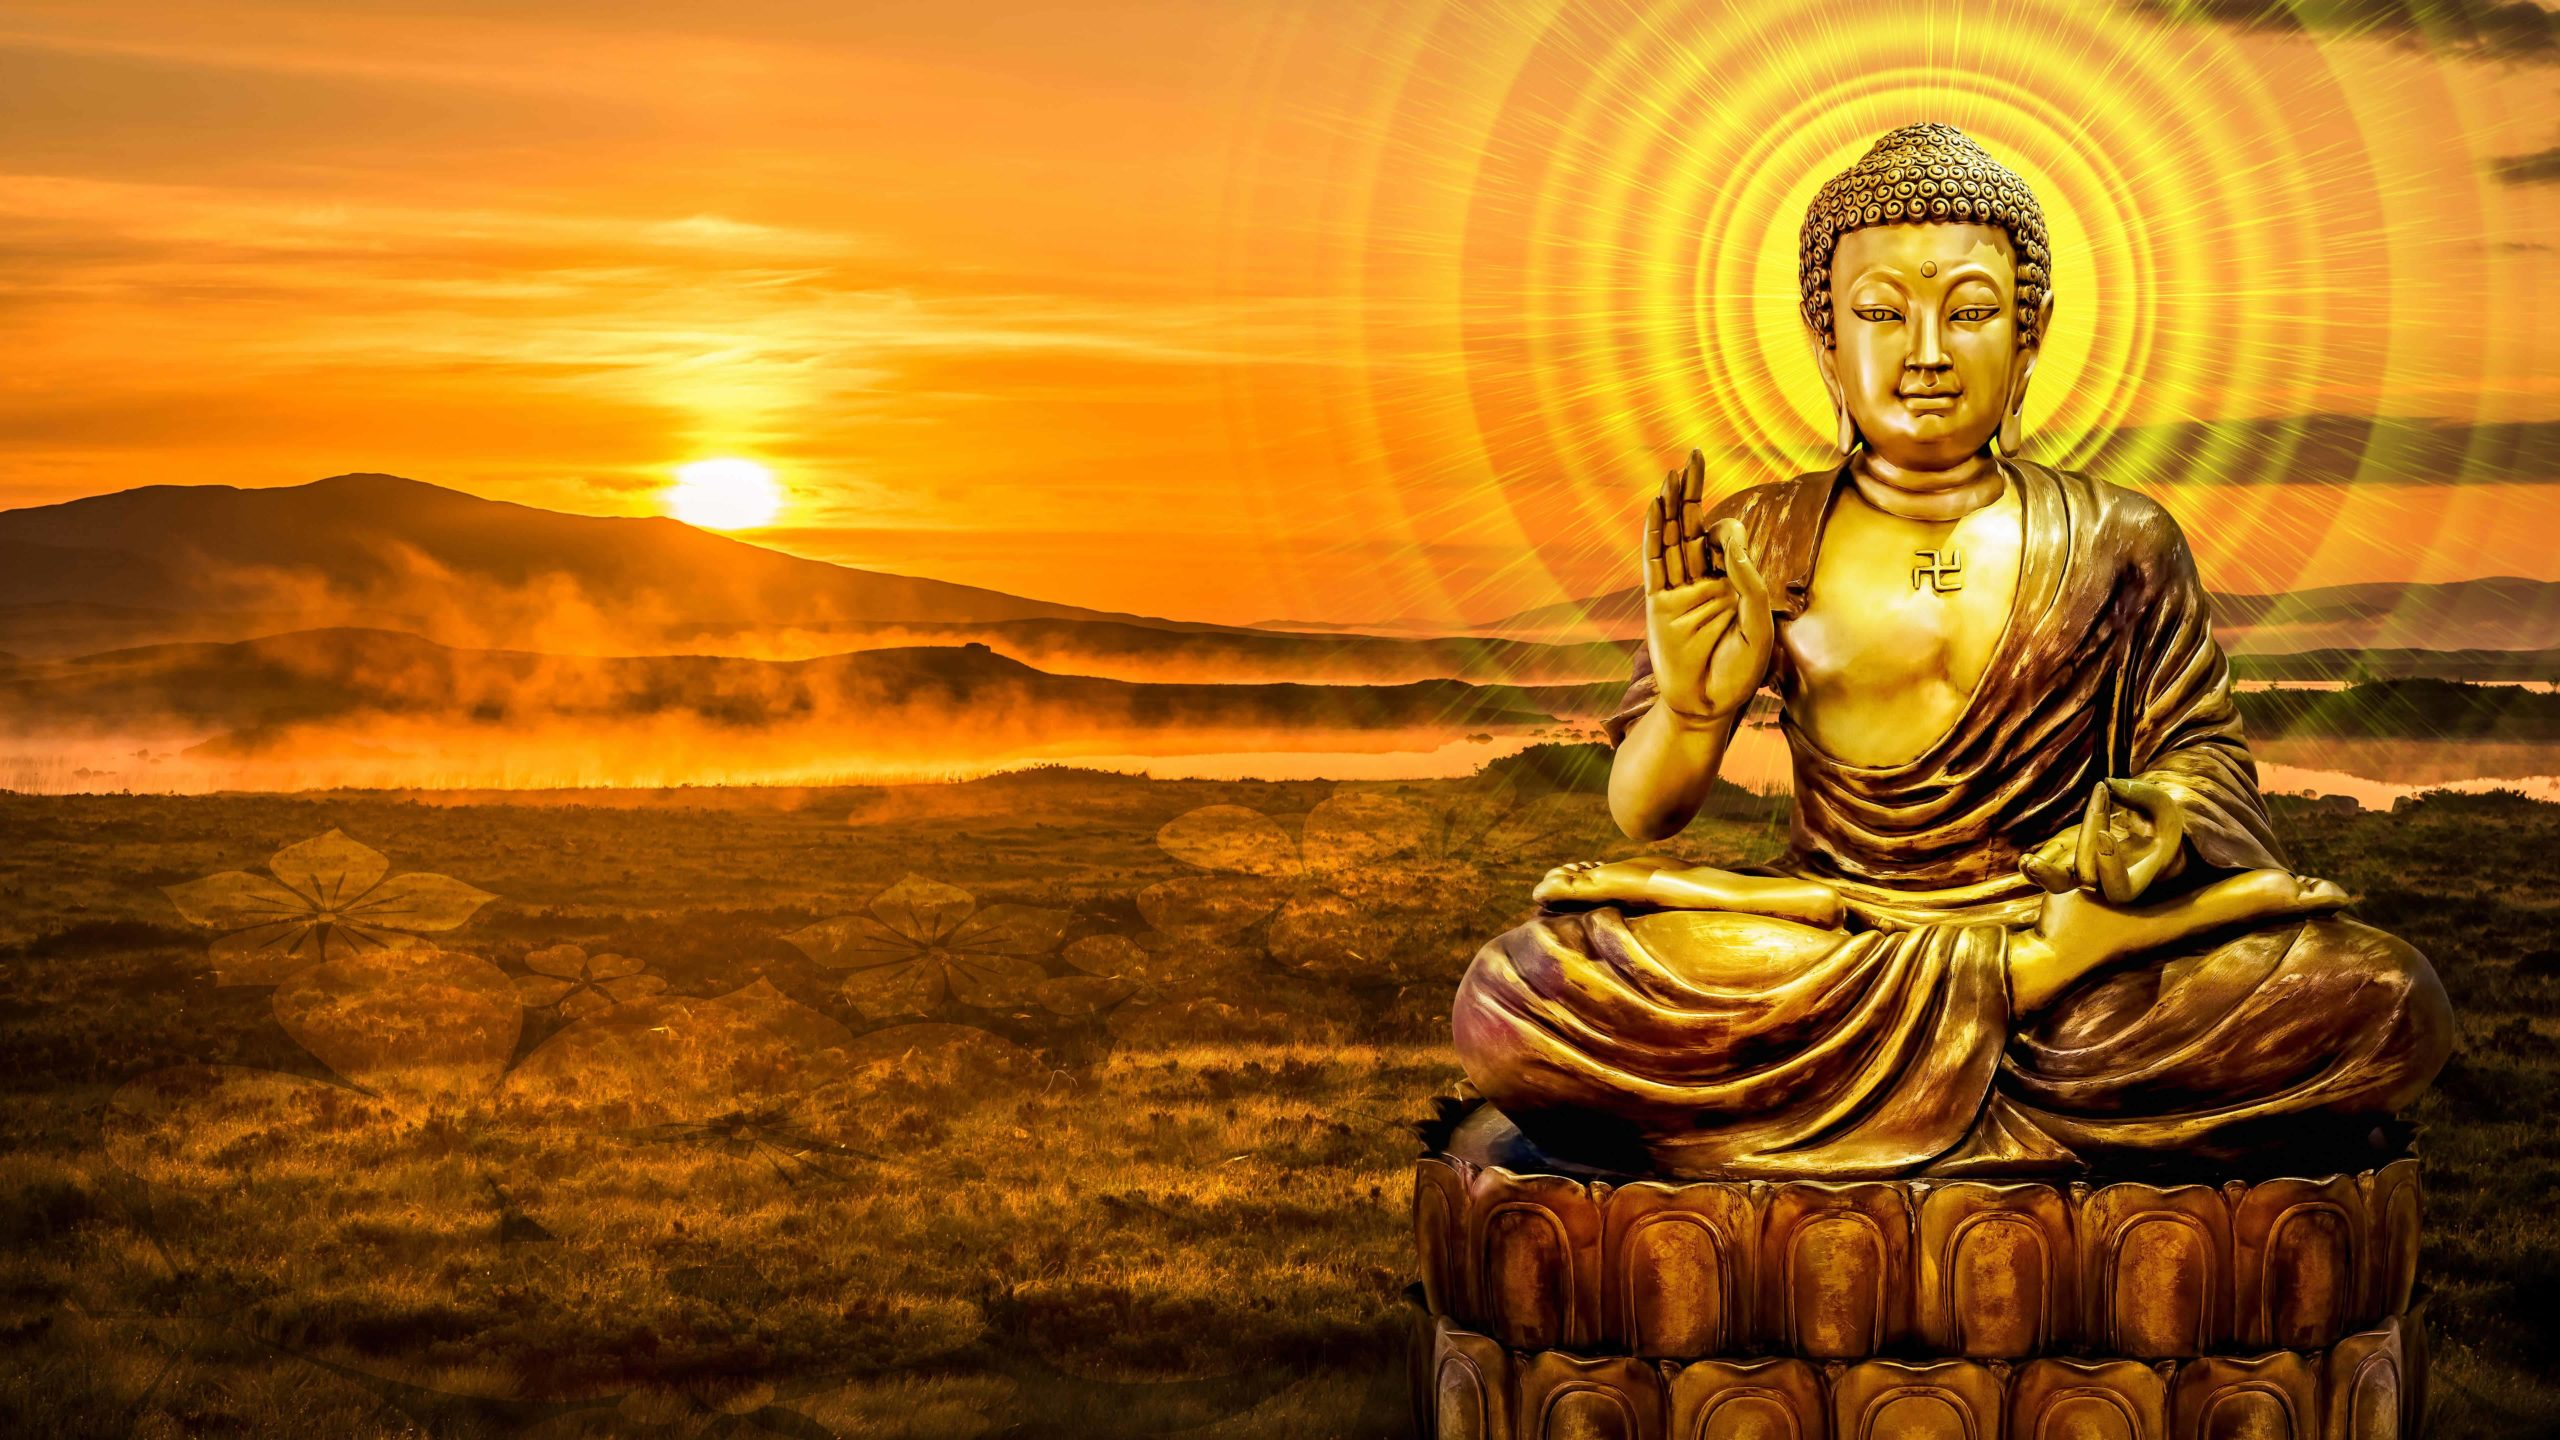 Lord buddha images for mobile 7